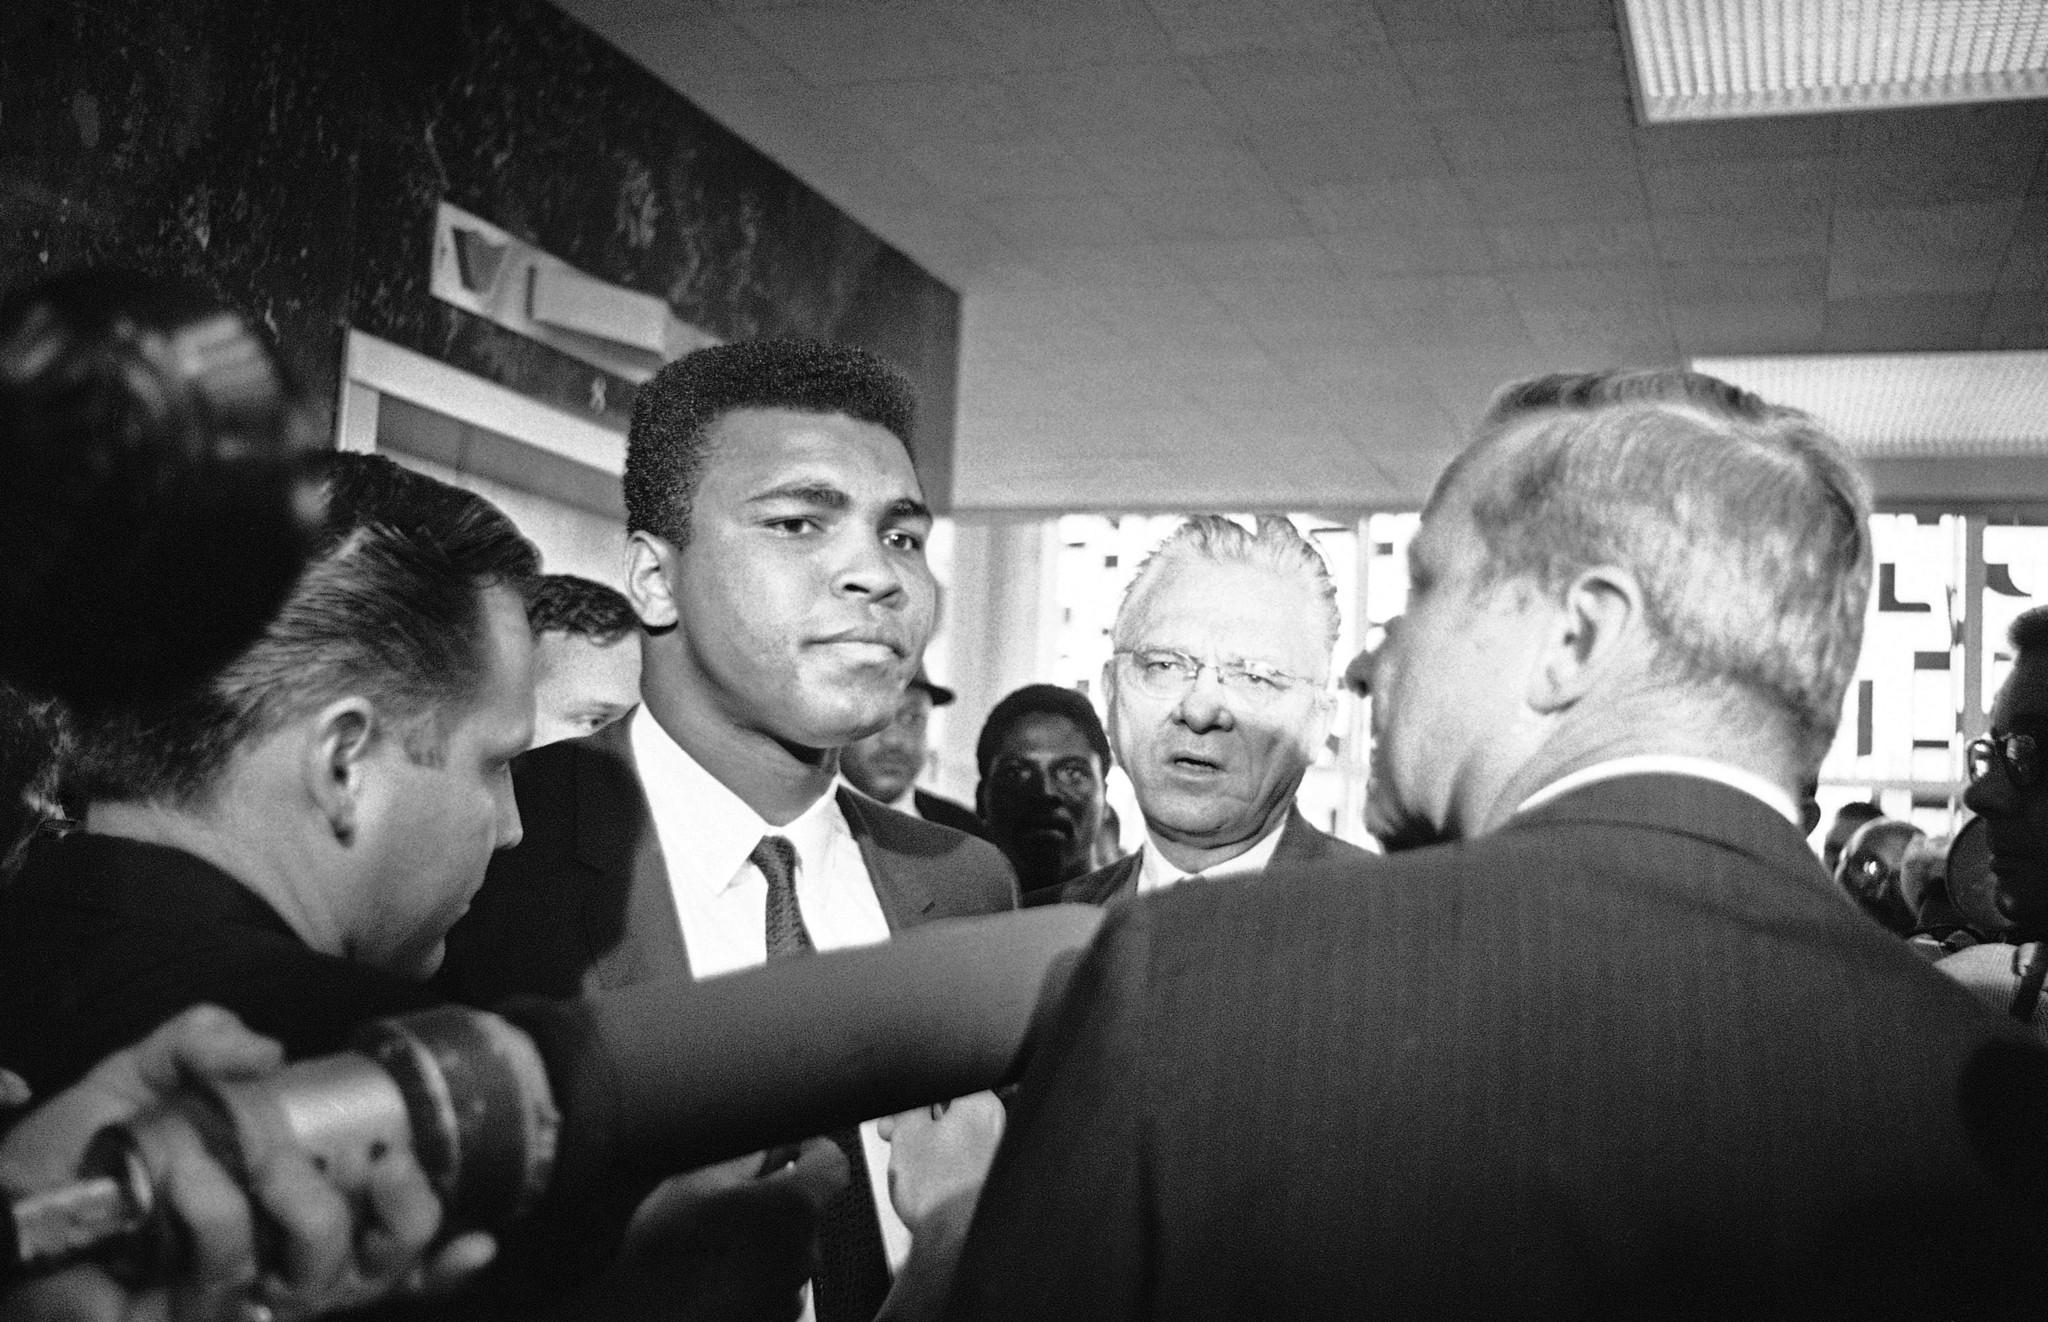 la-et-st-tca-muhammad-ali-fights-on-in-new-pbs-001.jpg